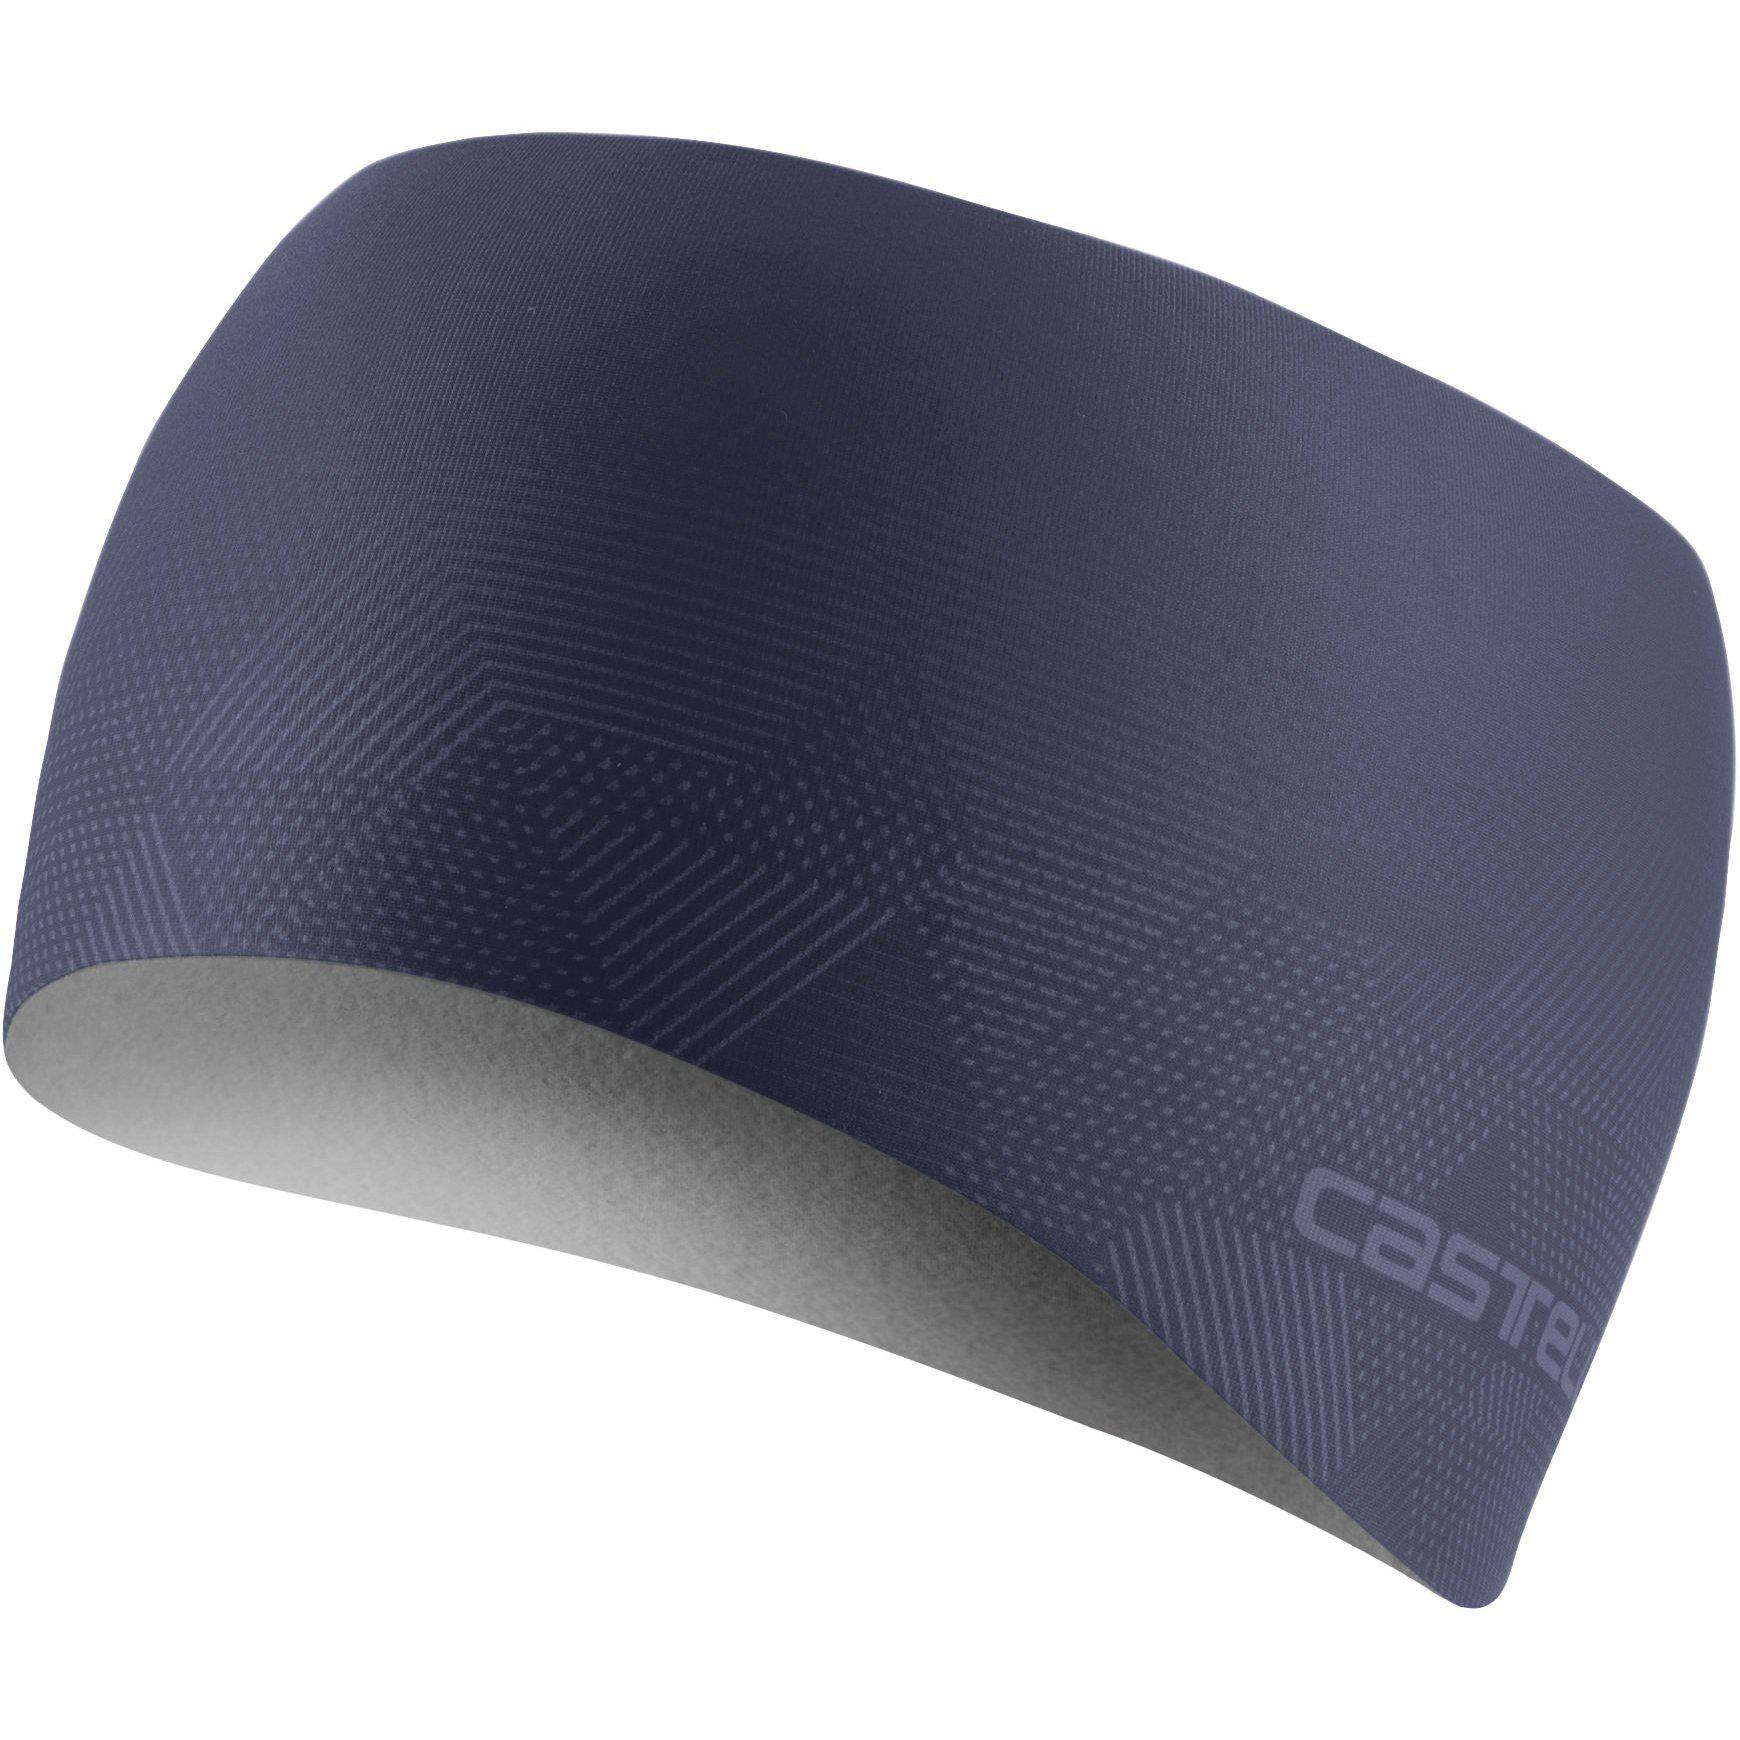 Castelli-Castelli Pro Thermal Headband-Savile Blue-UNI-CS205464148-saddleback-elite-performance-cycling